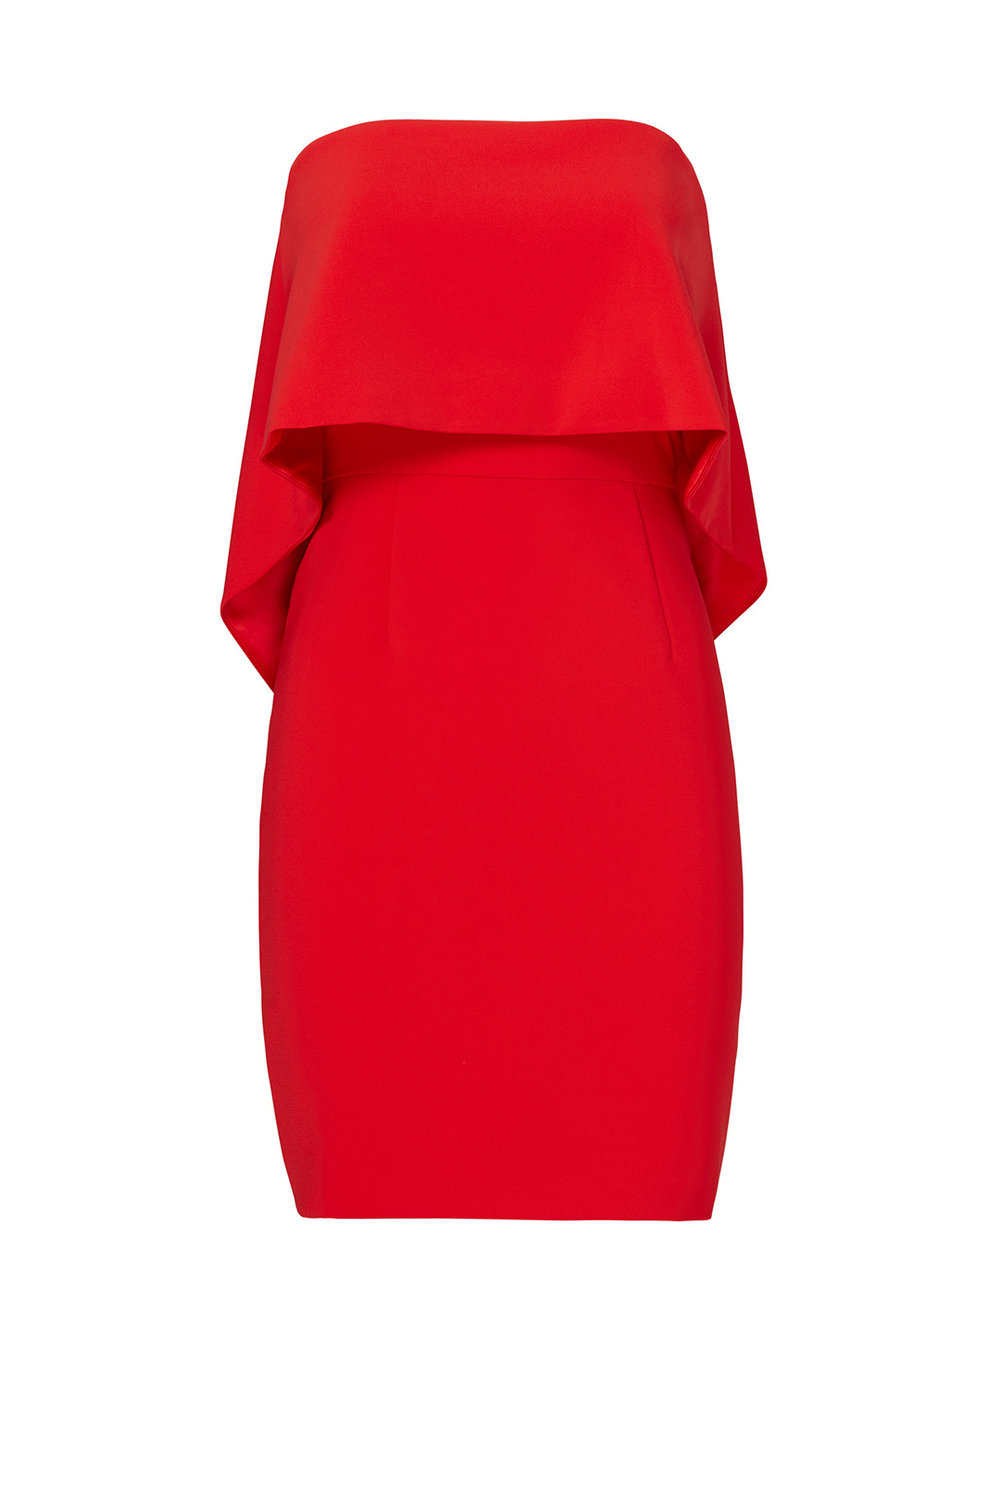 Jay Godfrey Red Dress.jpg